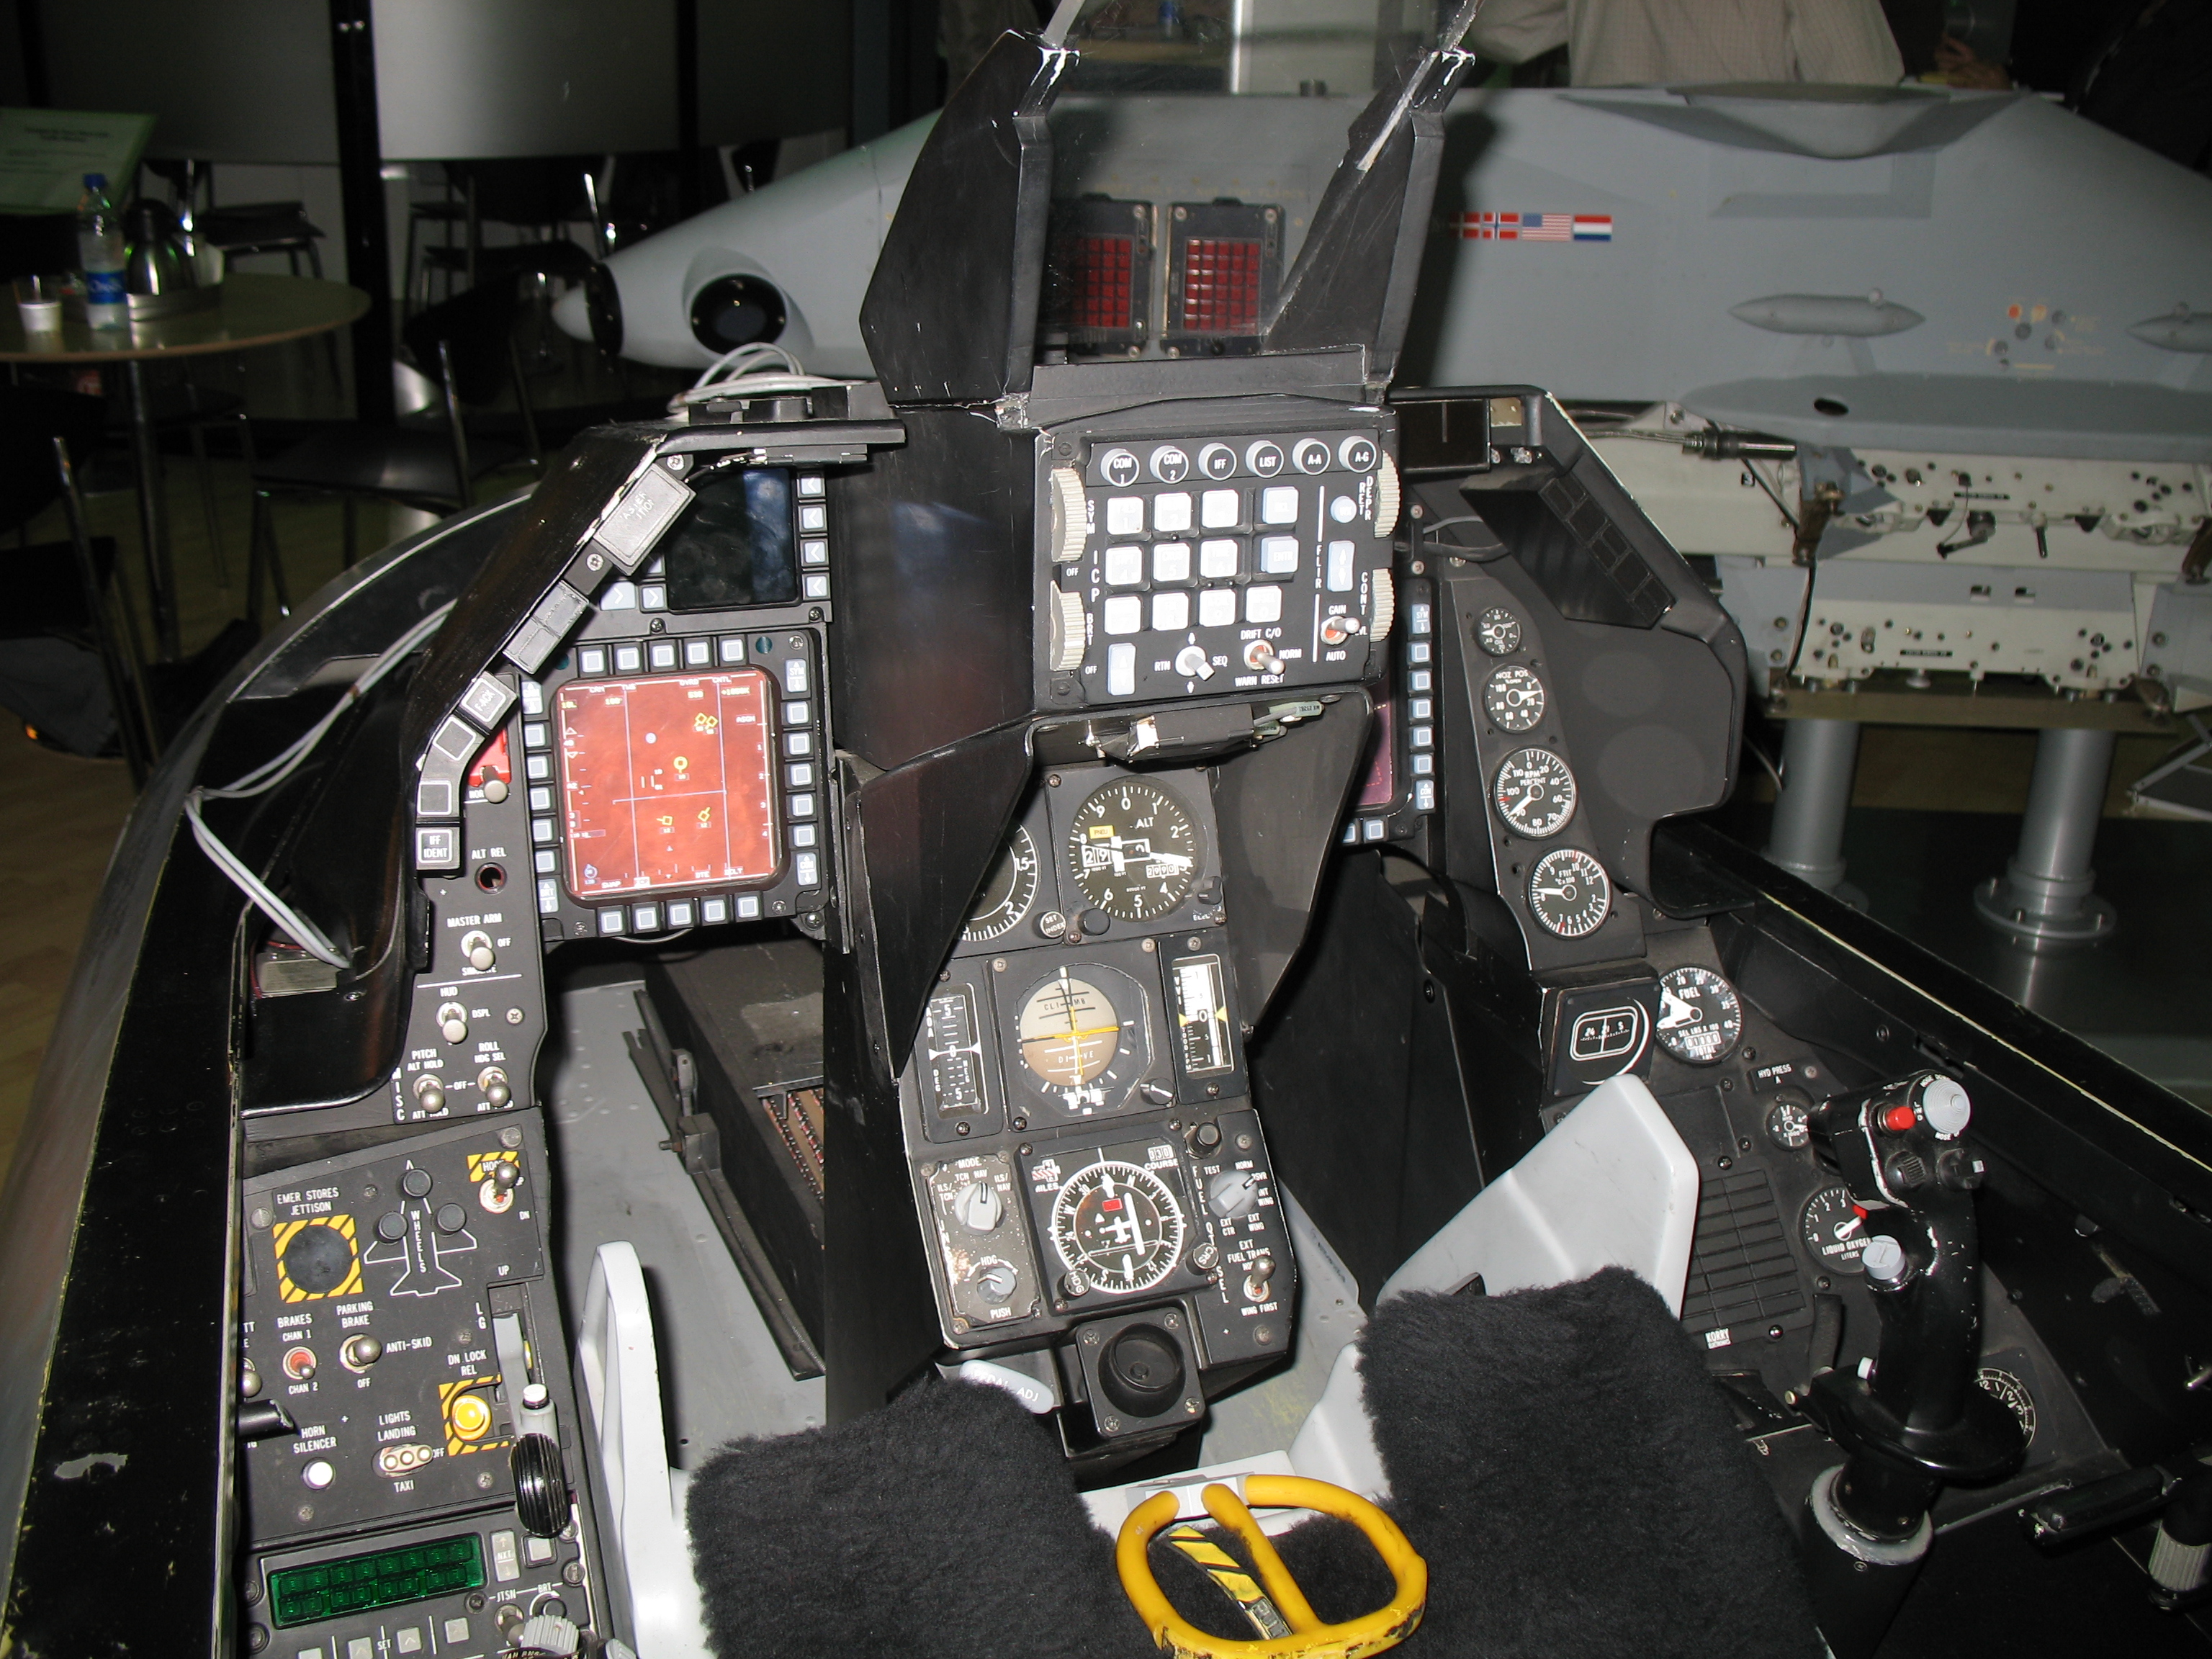 F 16 Fighter Jet Cockpit File:F16 Cockpit, Asia...